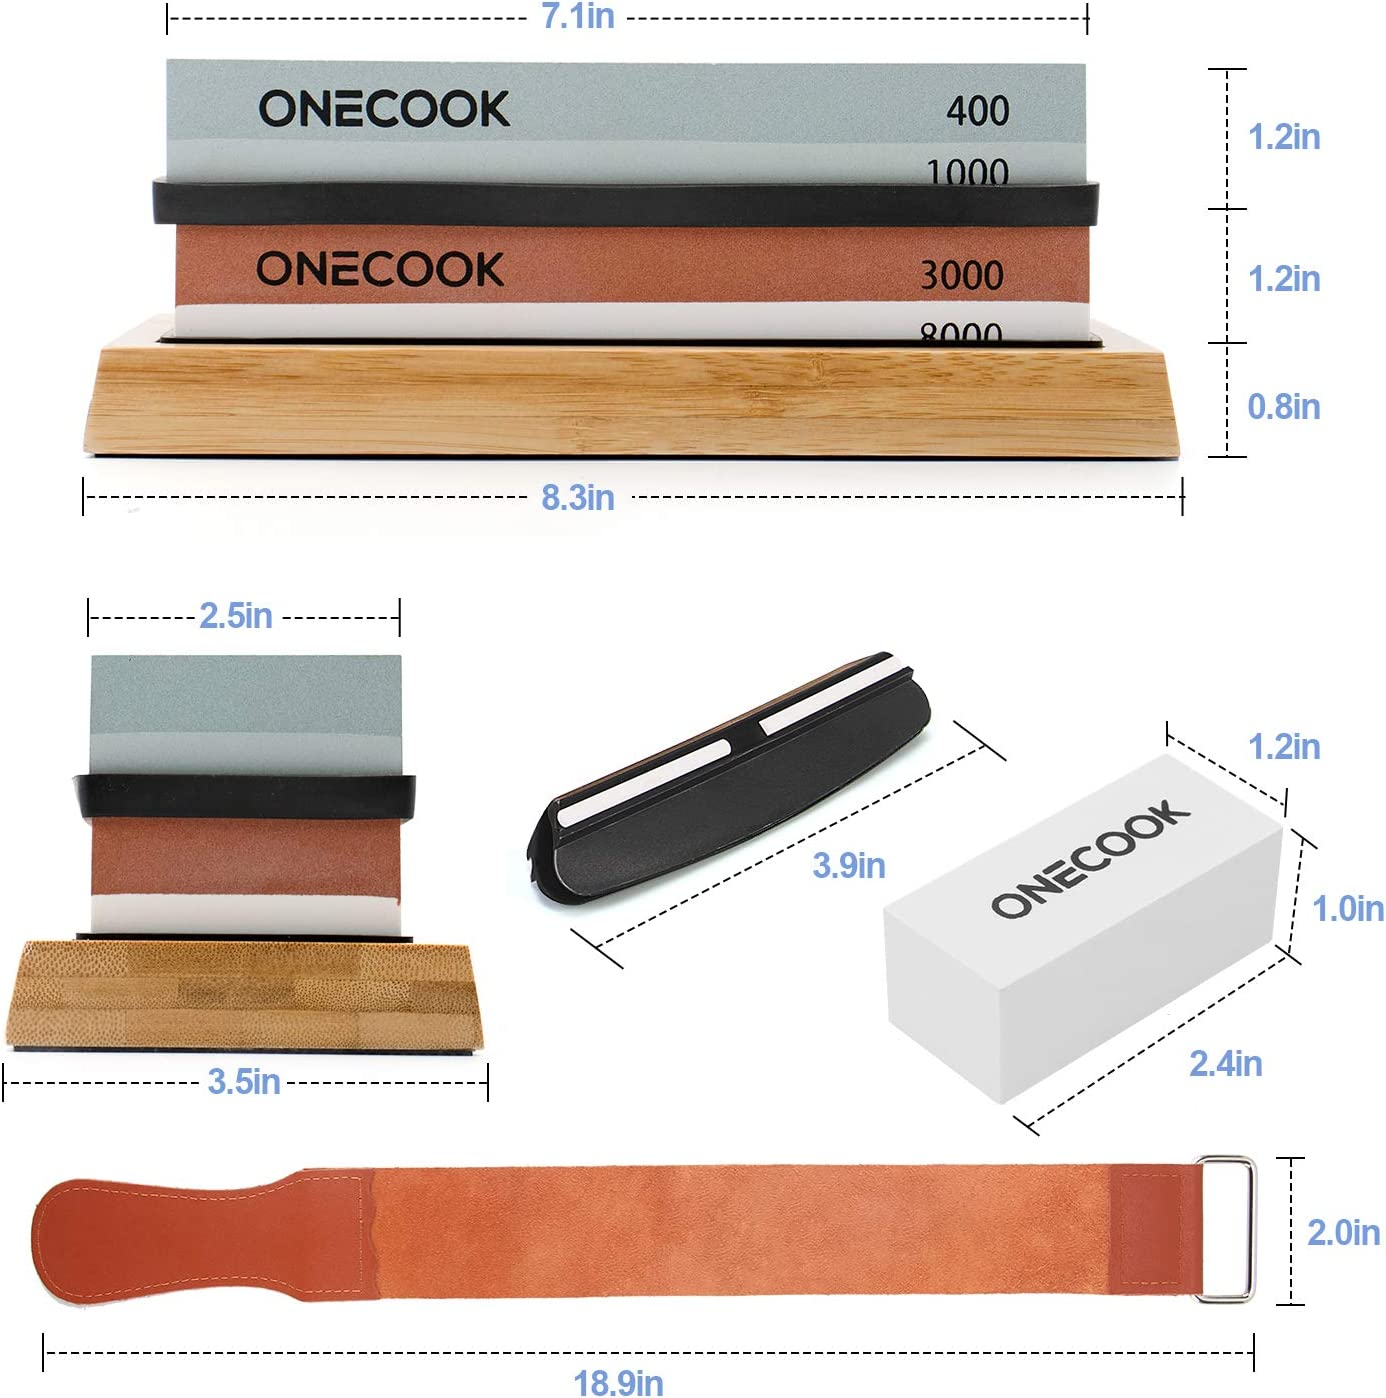 Knife Sharpening Stone Set 400/1000 3000/8000, ONECOOK 4 Side Grit Whetstone Sharpening Kit with Non-slip Bamboo Base, Flattening Stone, Angle Guide and Leather Strop - -